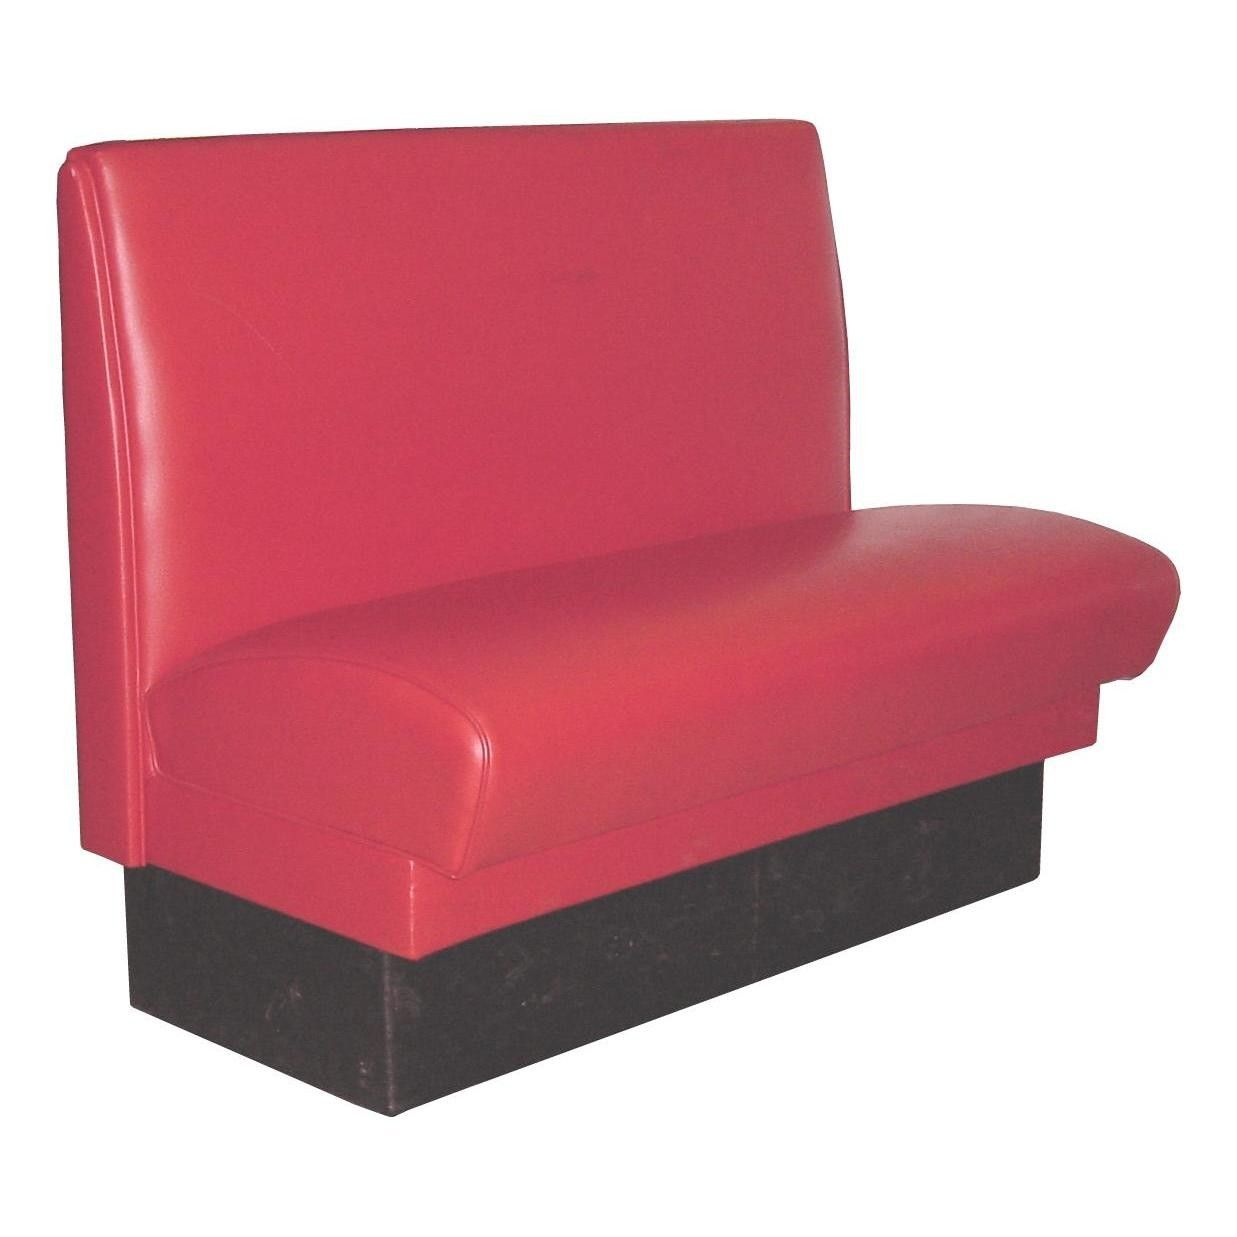 Red Single Booth Quality Constructed Bianco Seats Are Made To Last Many Seats Are Still In Use After Twenty Or More Years The Break Room Seating Upholster